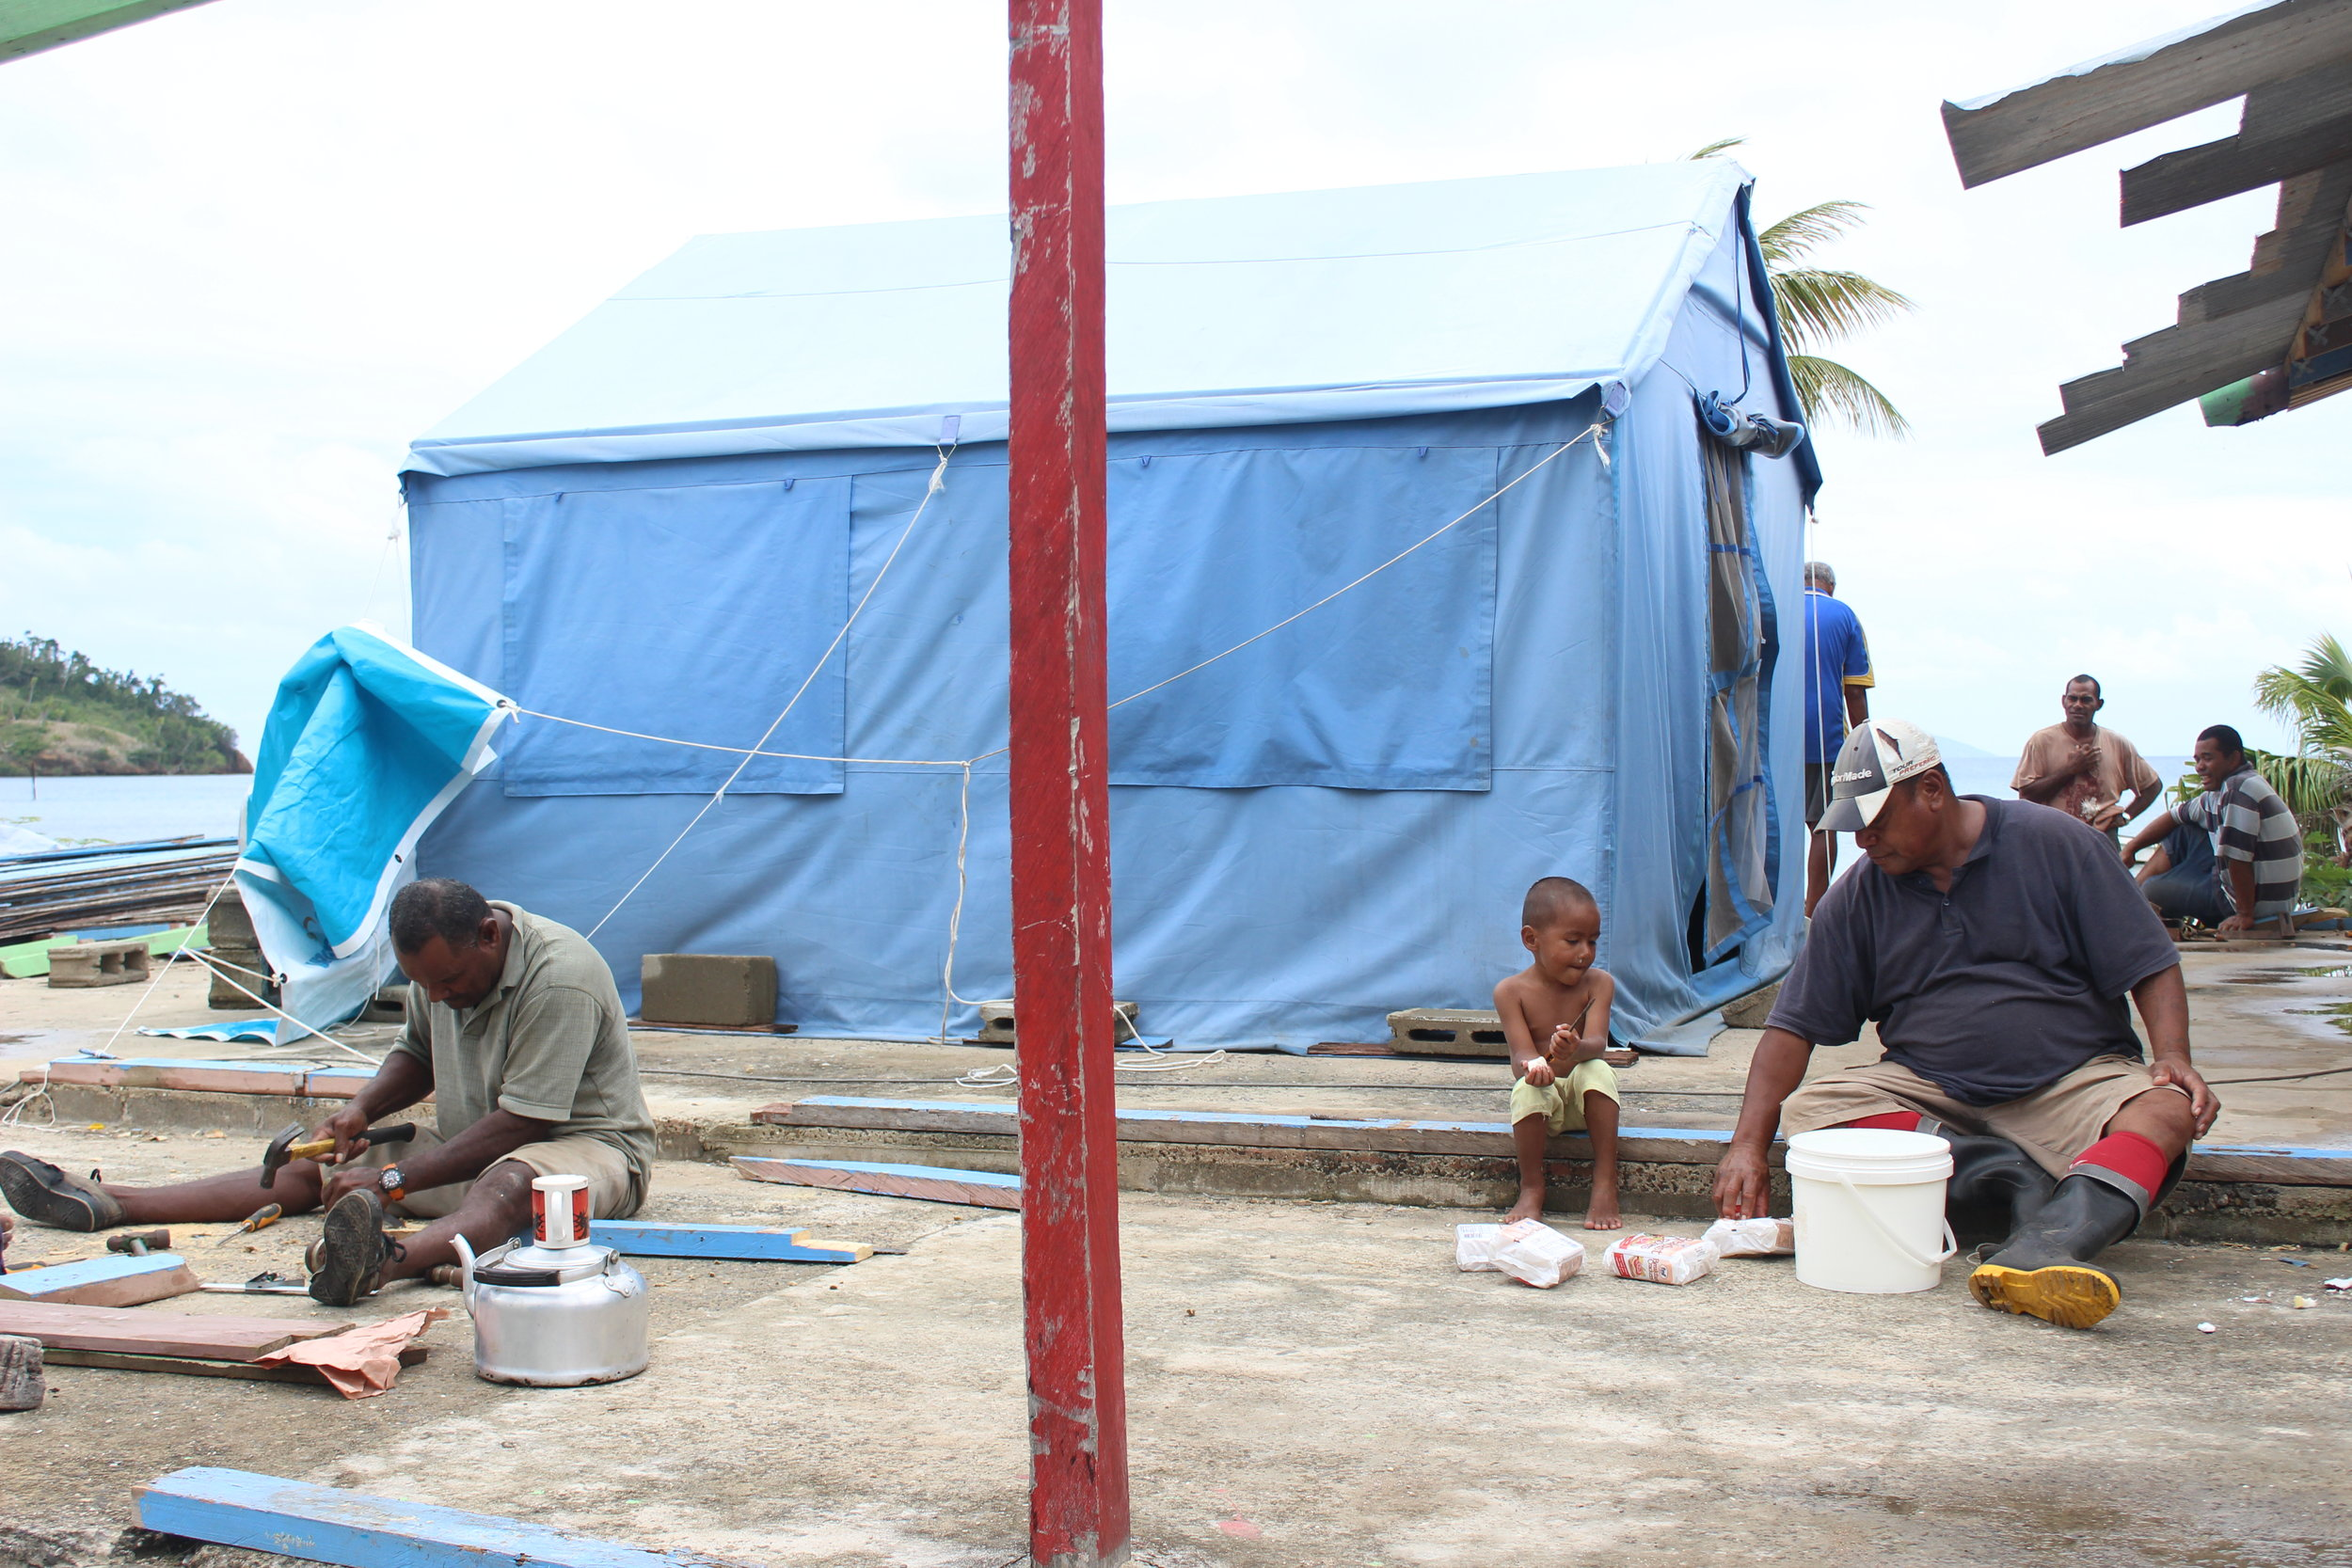 Travelling opens your eyes to many experiences and lessons to be learnt. Here is a little boy of 4 years old eating his breakfast on the job sight with his father. His breakfast consists of dry biscuits and water. the village was recovery from cyclone damage.